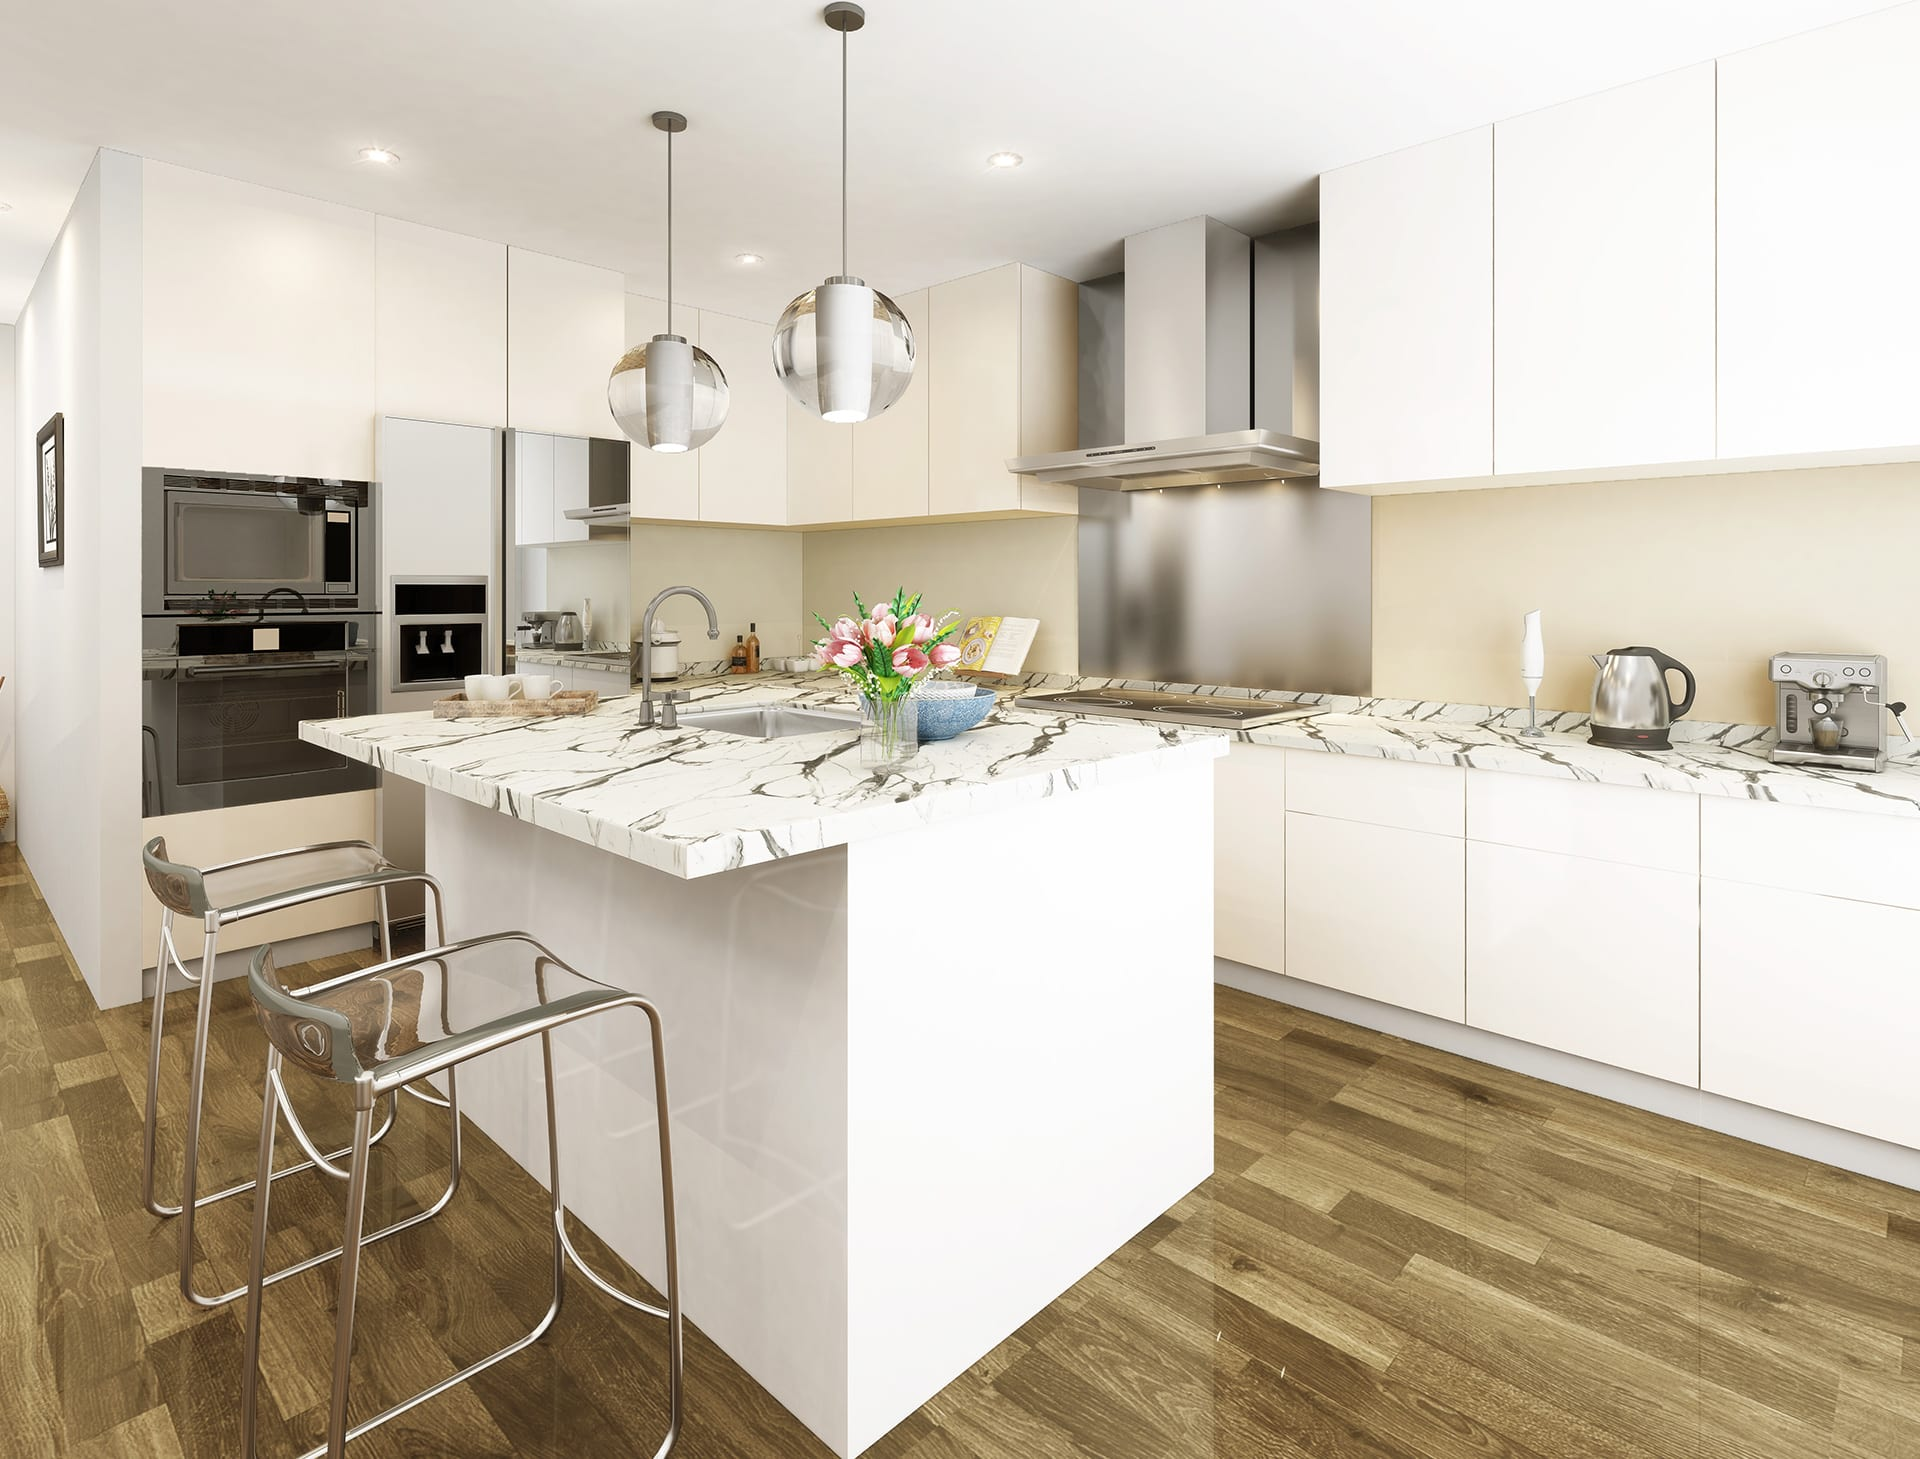 A laminate kitchen worktop from our Italian Marble Décor range